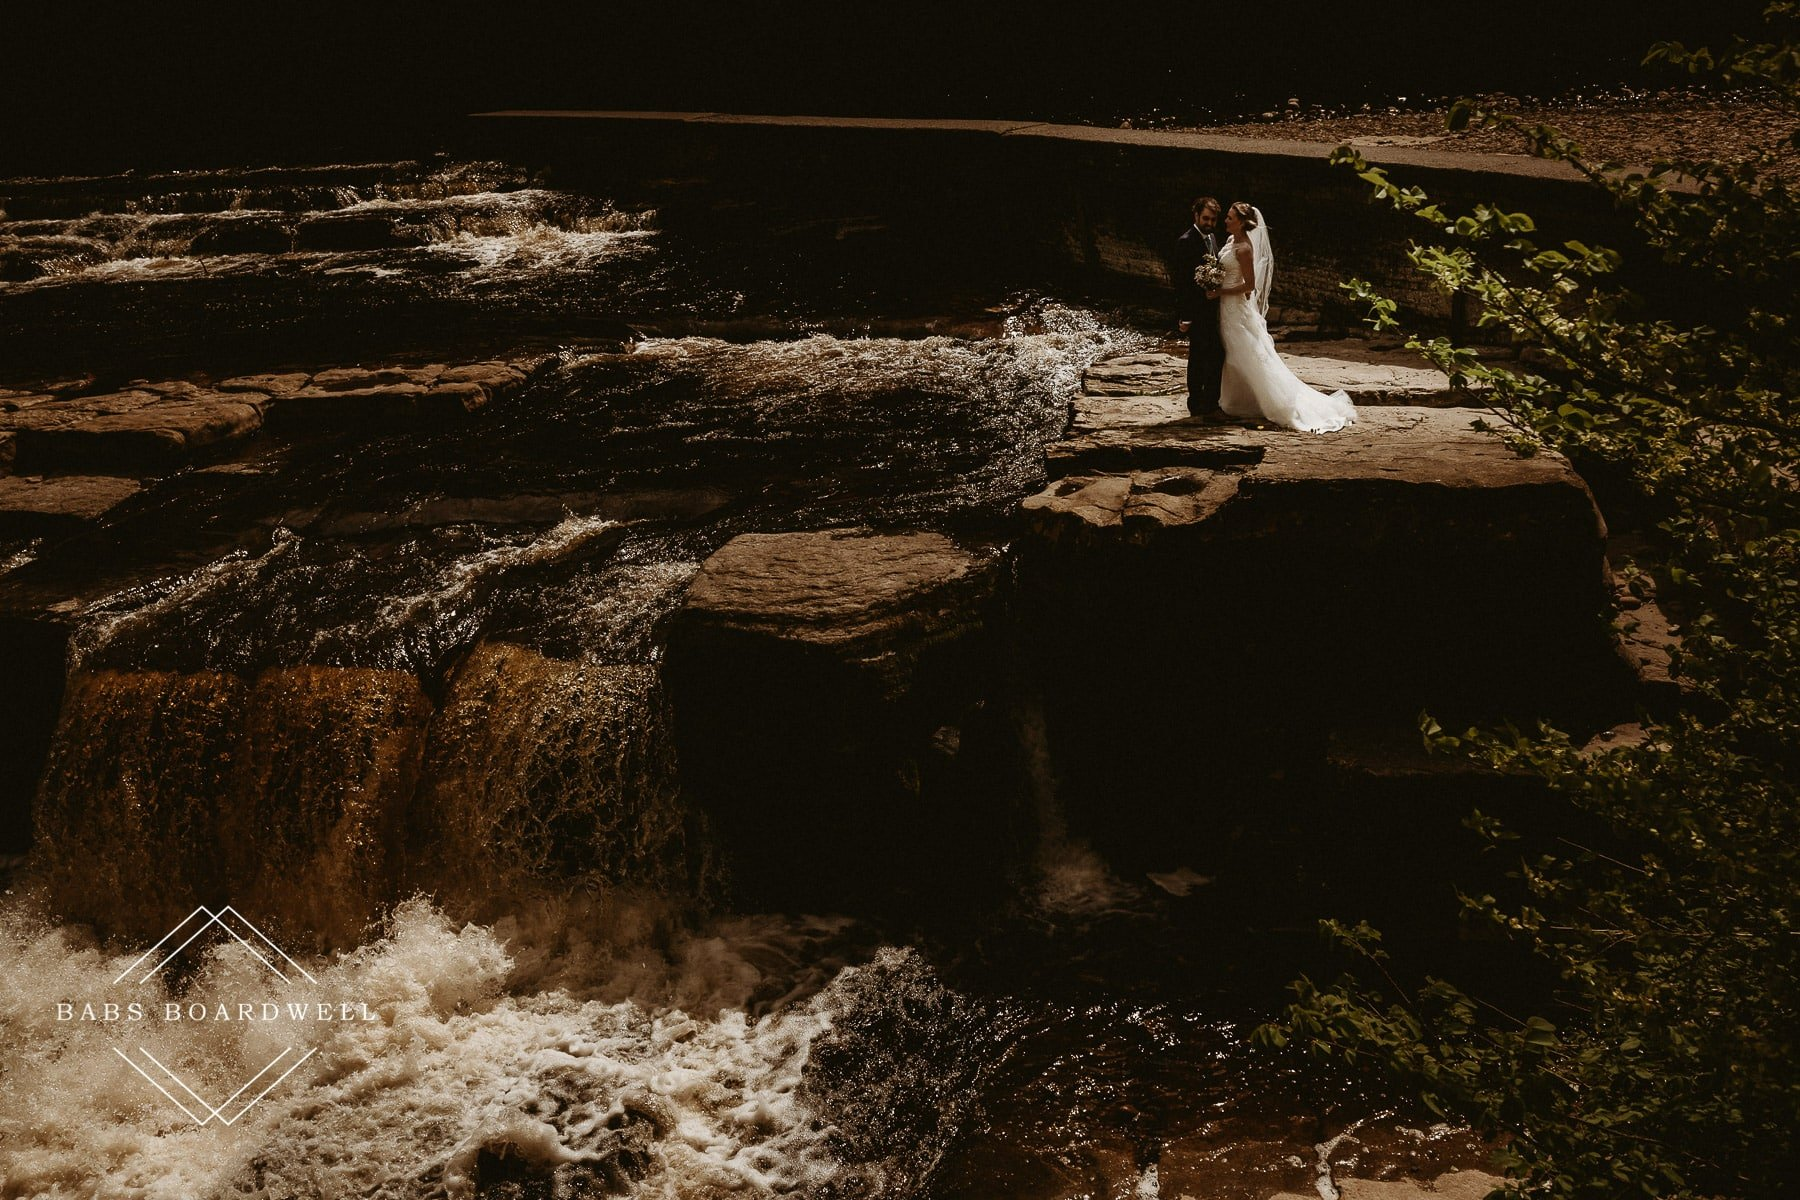 Andy & Jen's beautiful wedding day at Low Gingerfield Farm in Yorkshire